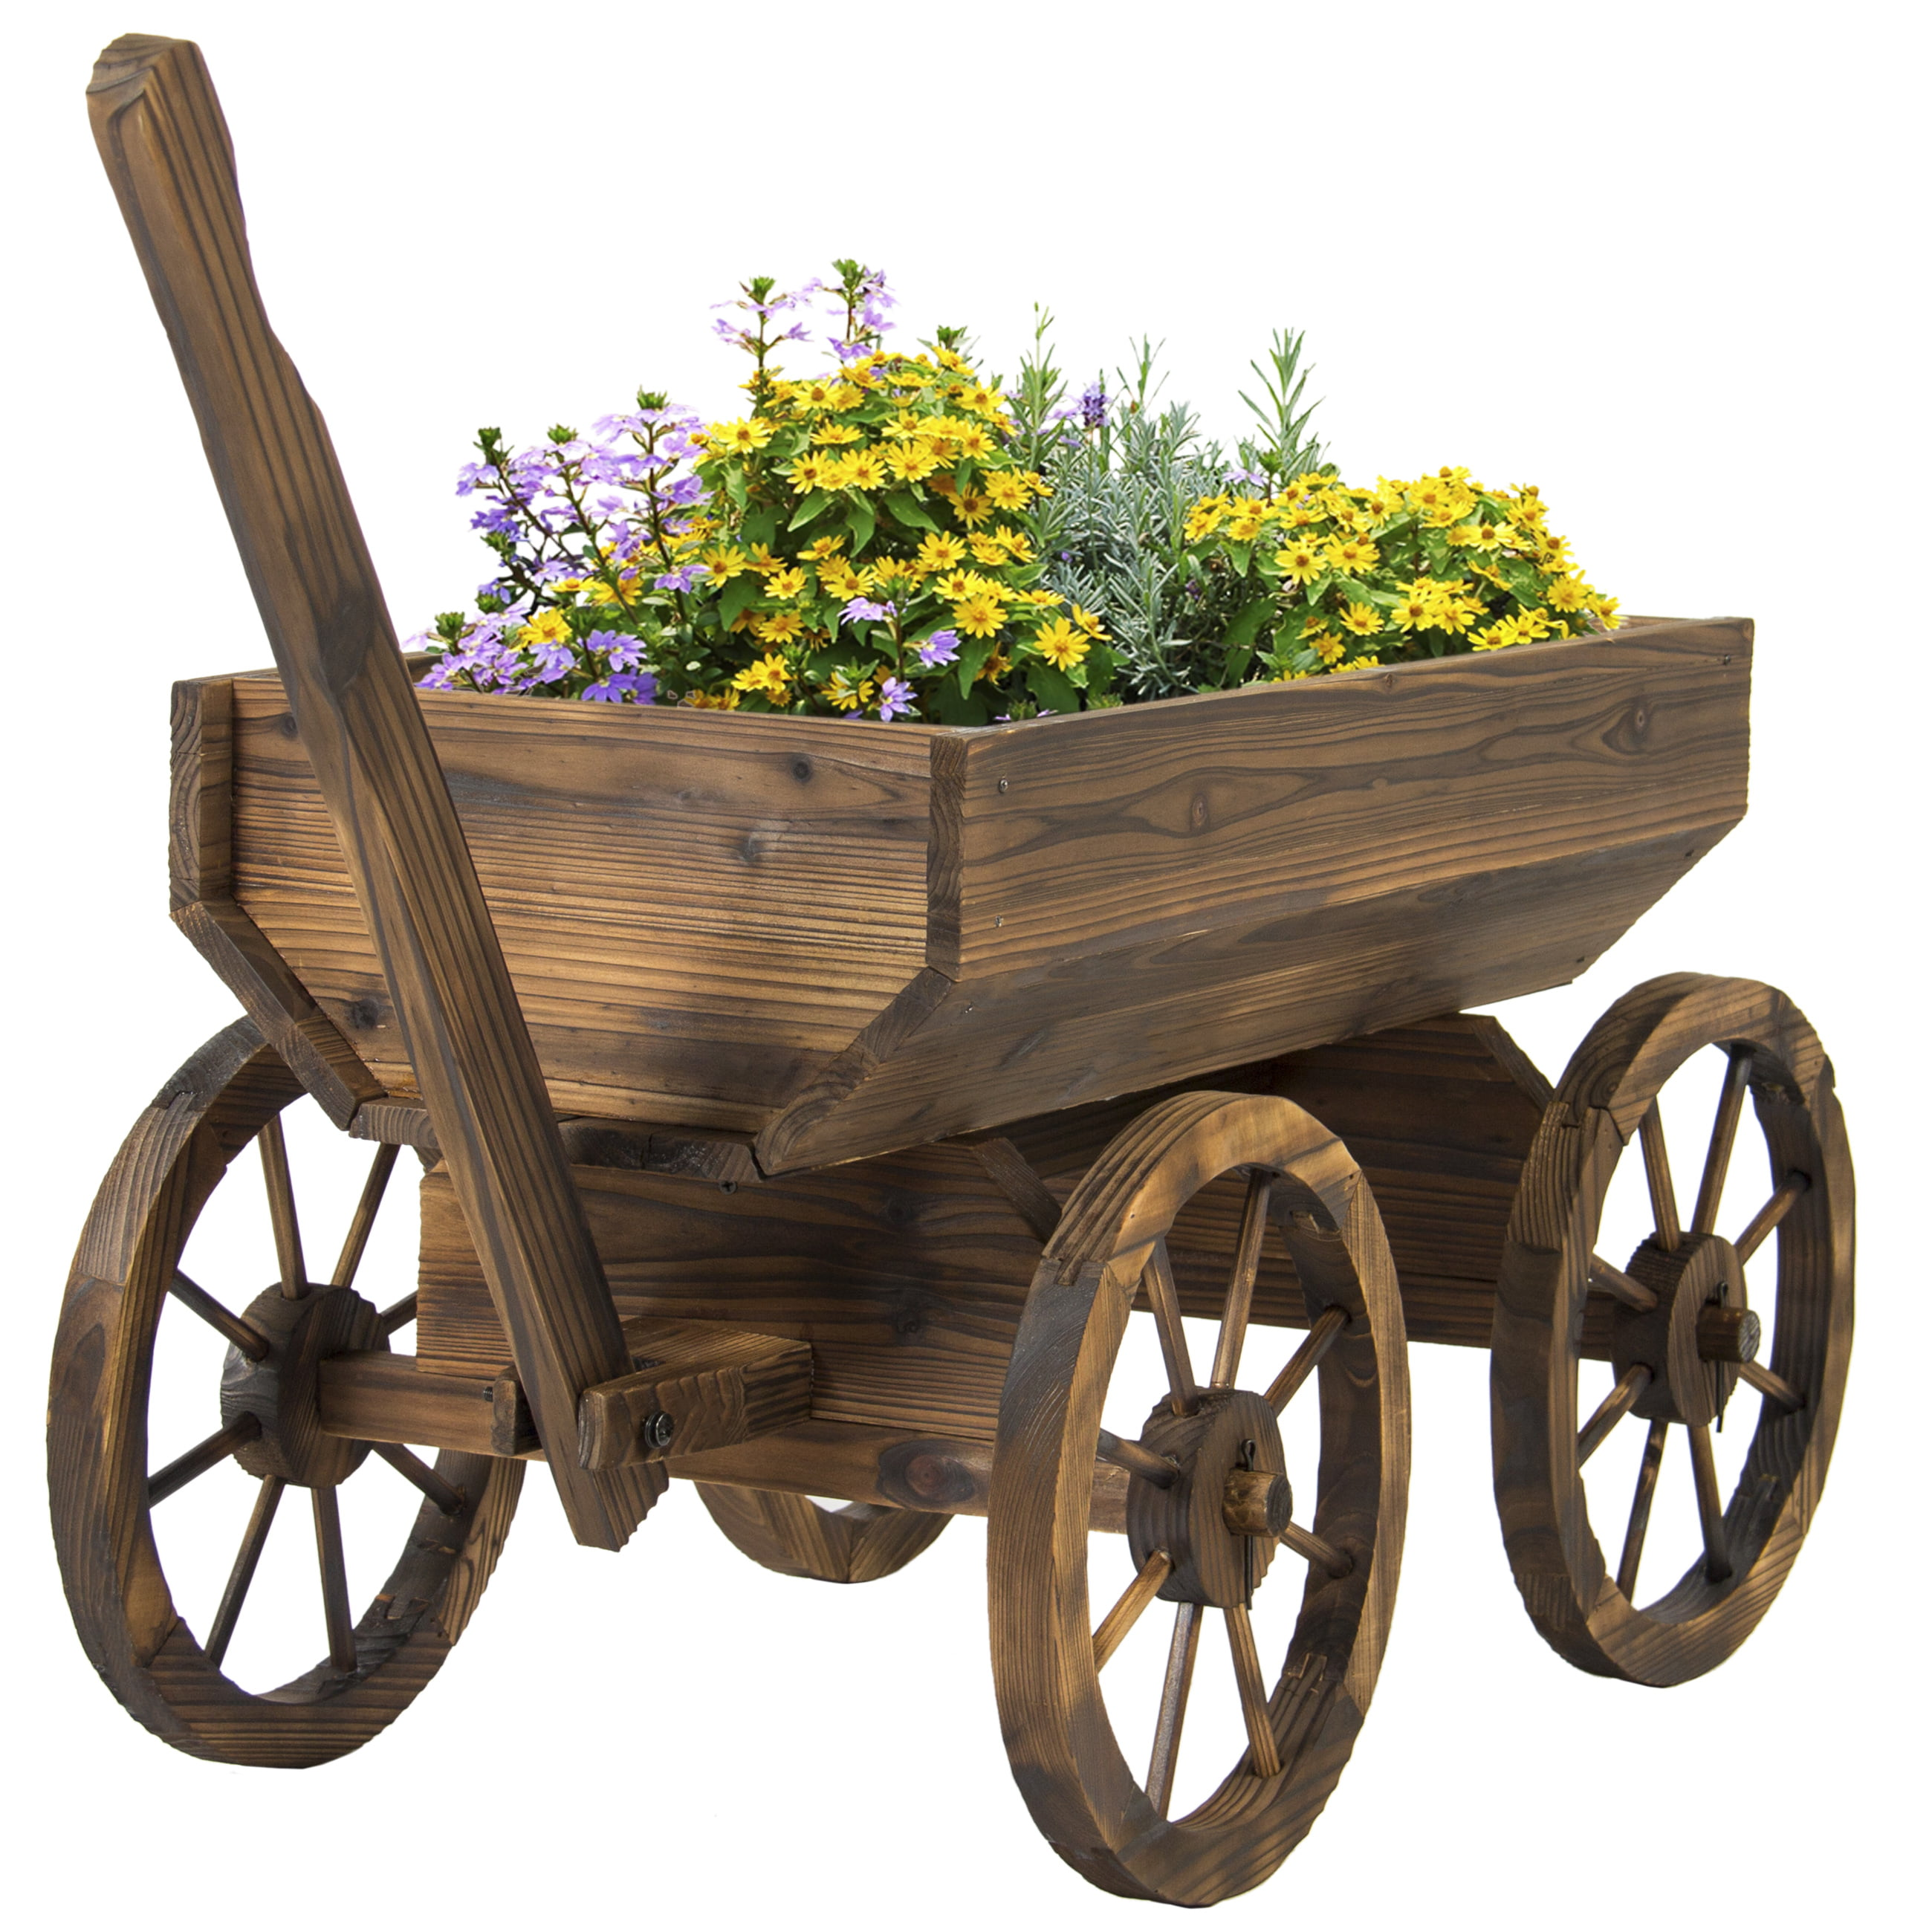 Garden Wood Wagon Flower Planter Pot Stand With Wheels Home Outdoor Decor    Walmart.com